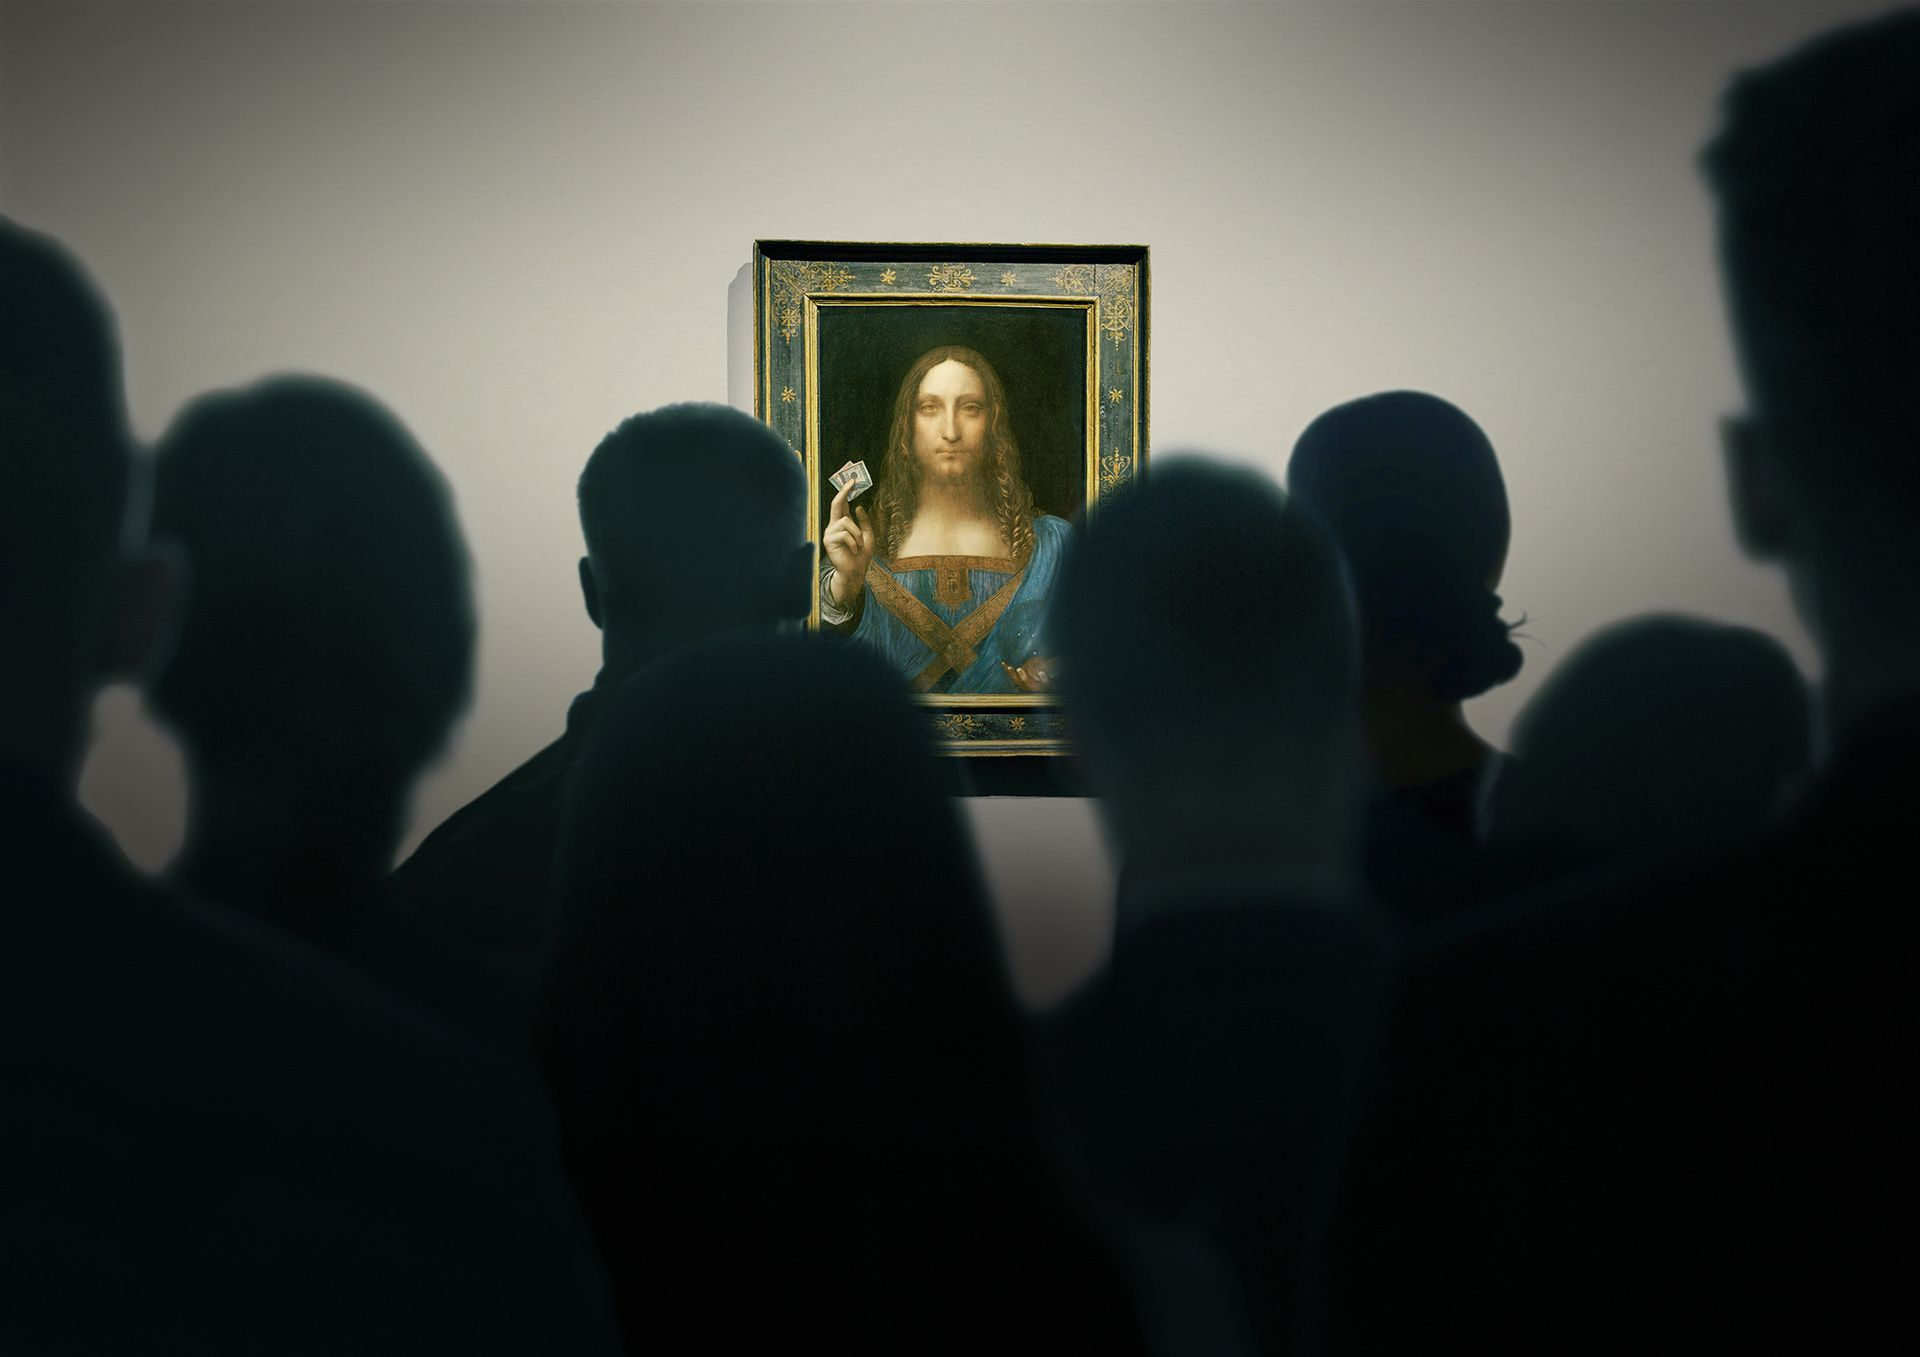 """The film, by the Danish director Andreas Koefoed, traces the painting's emergence as a """"sleeper"""" picture bought for $1,175 at a regional auction house in 2005 and follows it through to its record sale at Christie's © The Lost Leonardo. Courtesy of Sony Pictures Classics"""